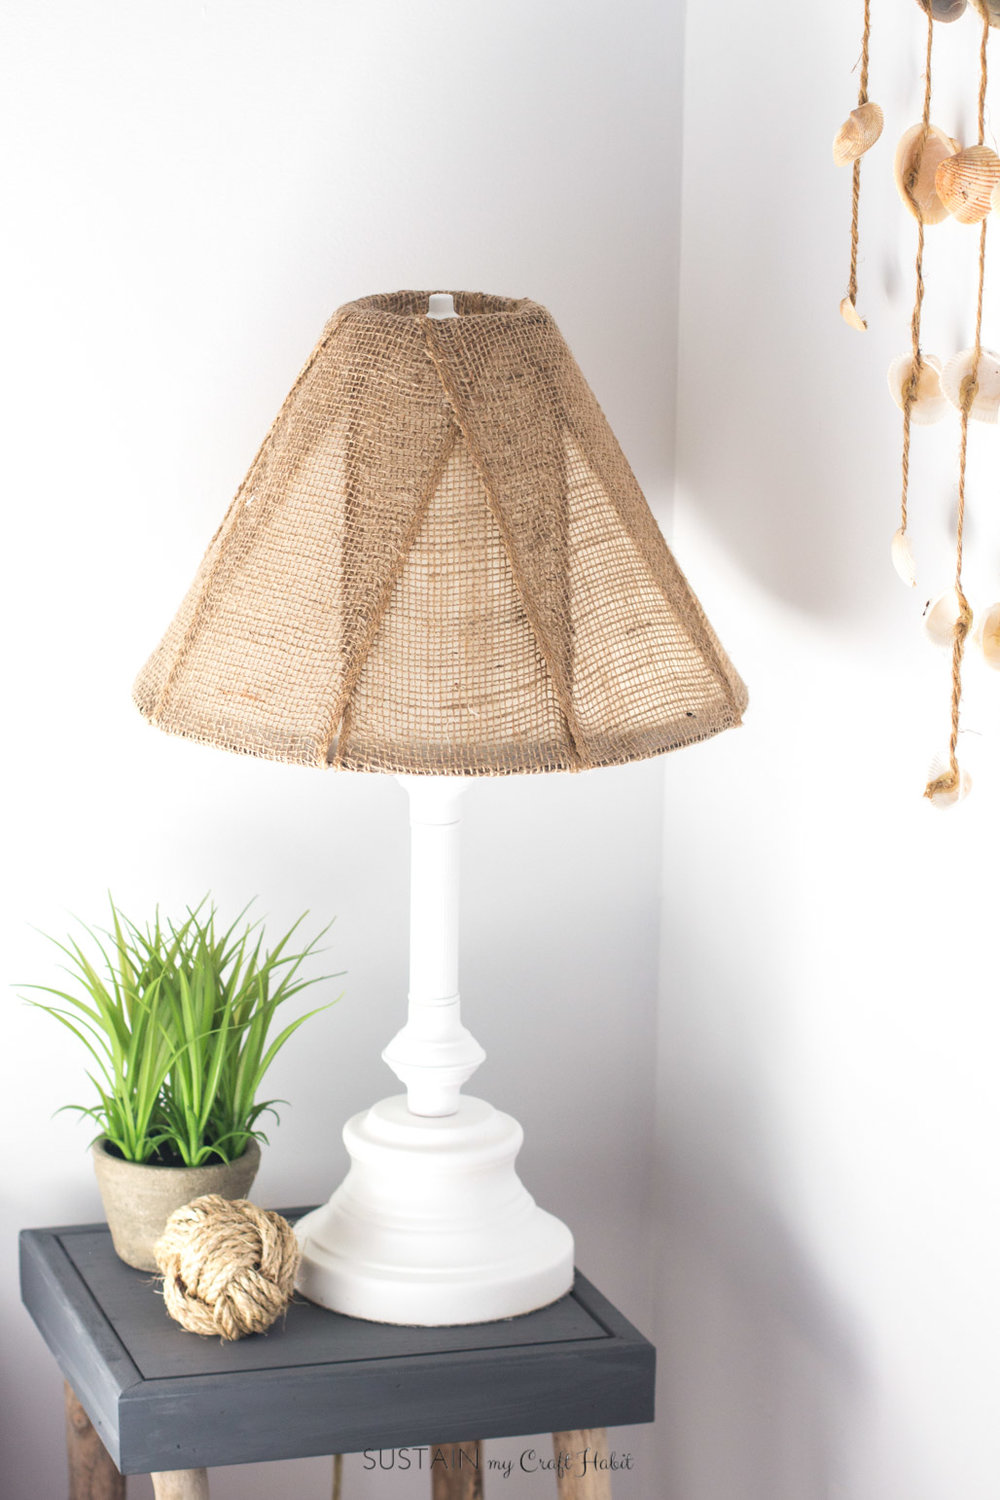 Am going to be on the lookout for brass lamps at the thrift store after seeing this makeover! Simple DIY upcycling idea with step-by-step tutorial.